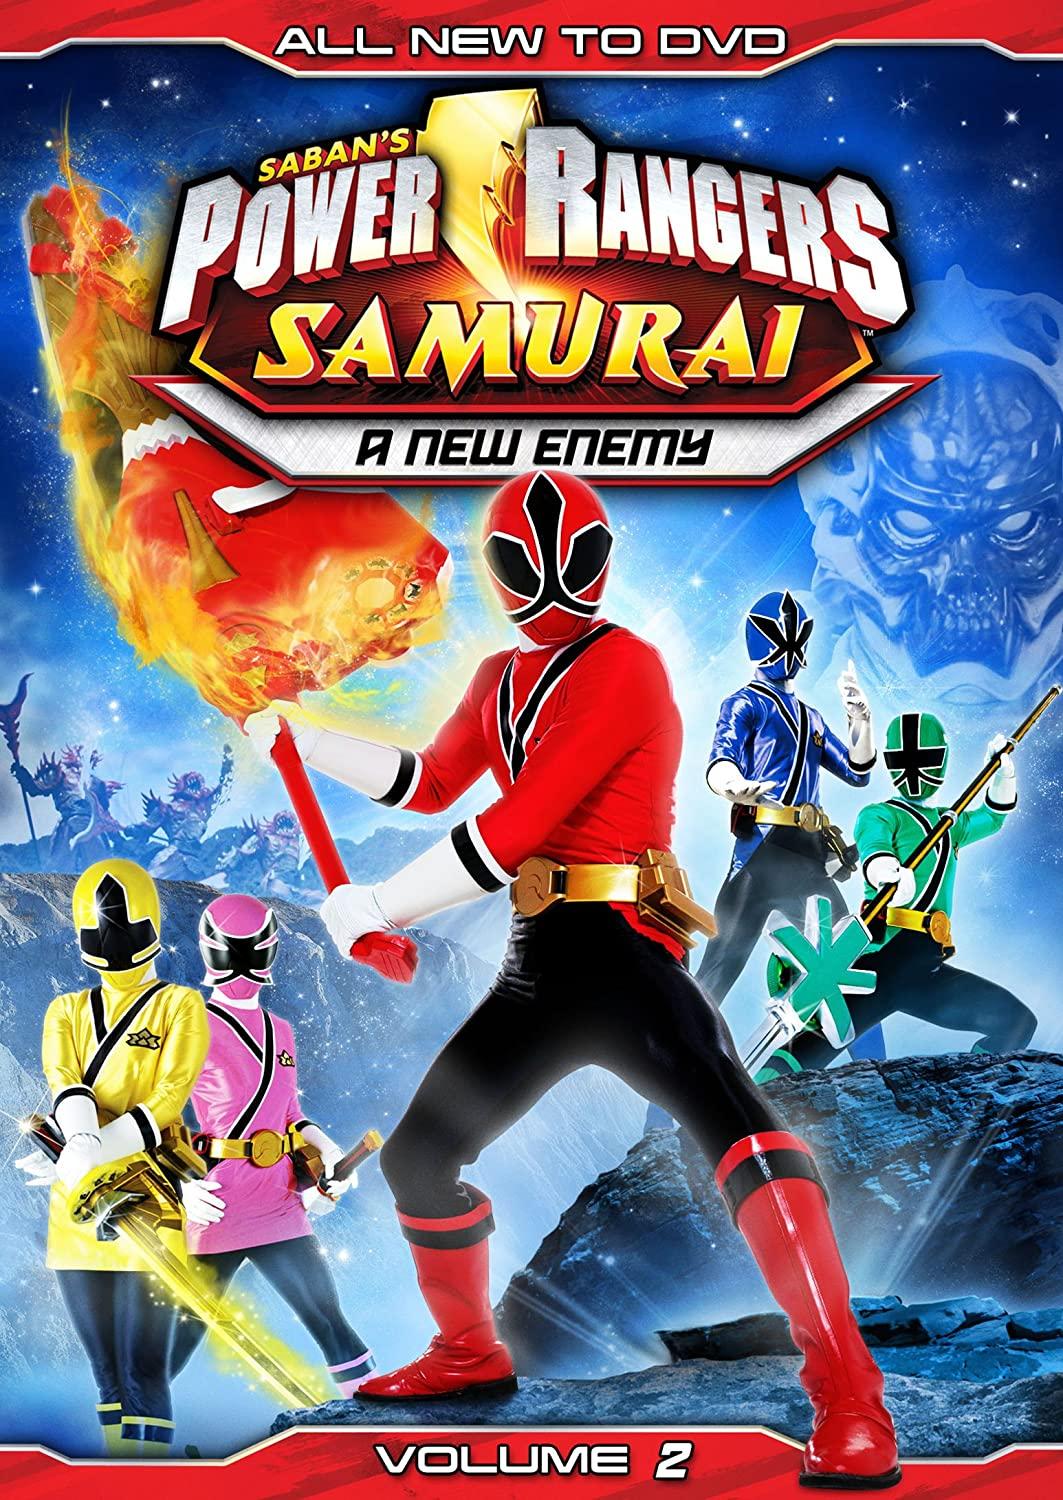 Once Power rangers samurai not